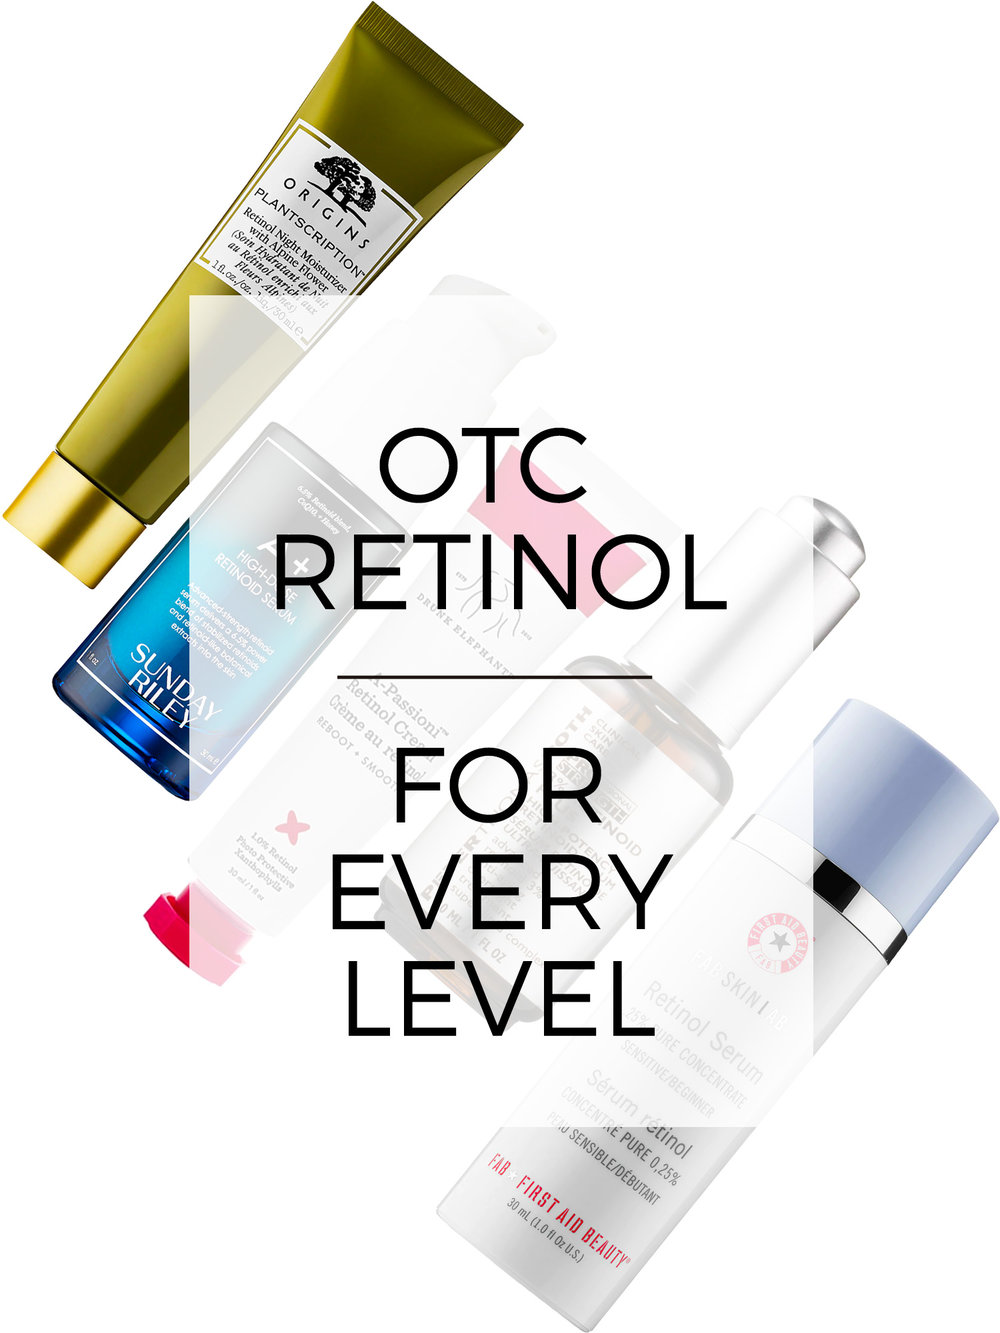 Retinol FAQ and 5 OTC Recommendations